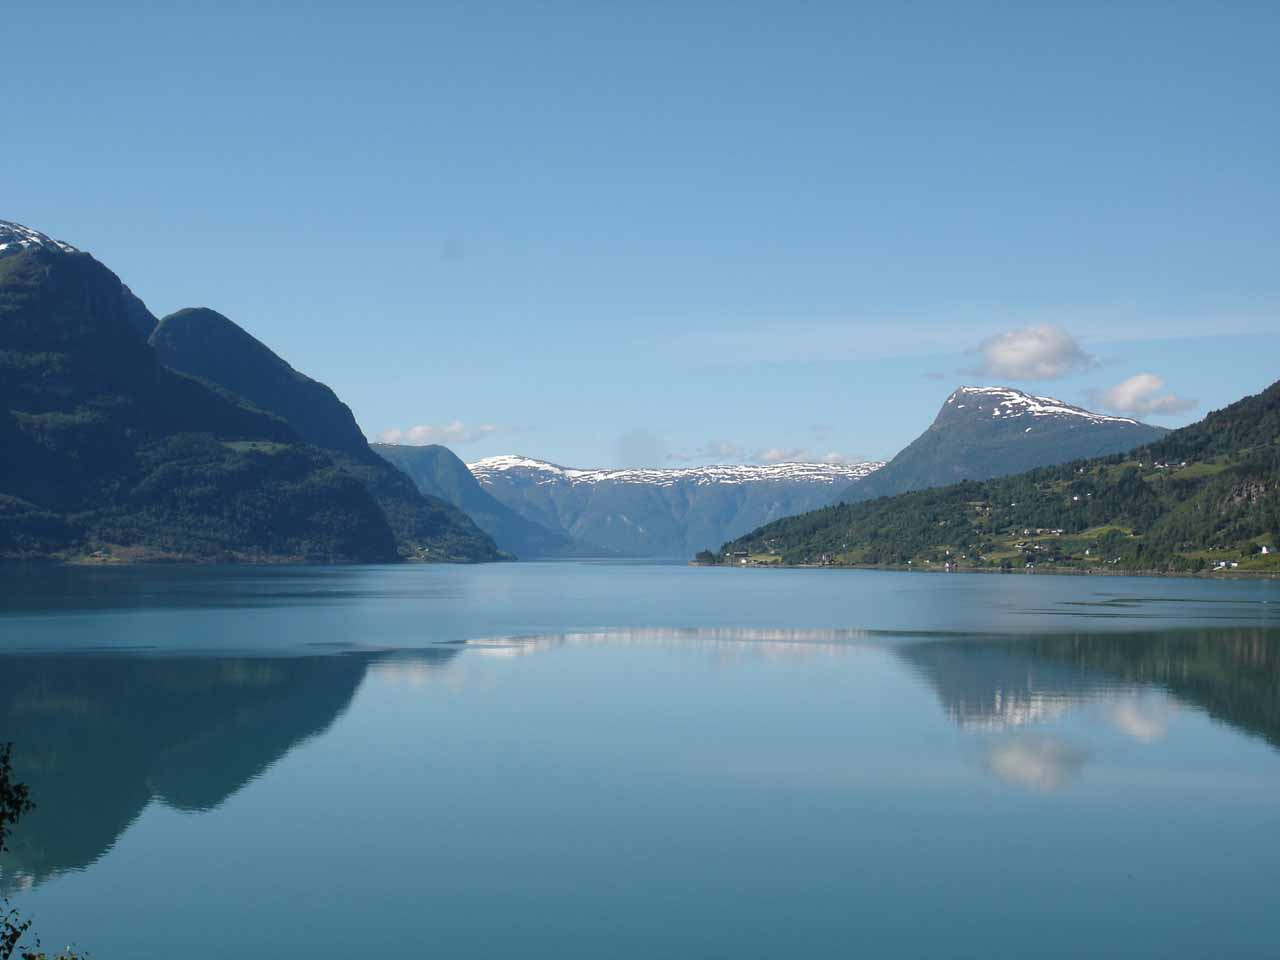 As we were heading further south towards Kvinnafossen, we would be driving along the northern banks of Sognefjorden, the longest fjord in Norway